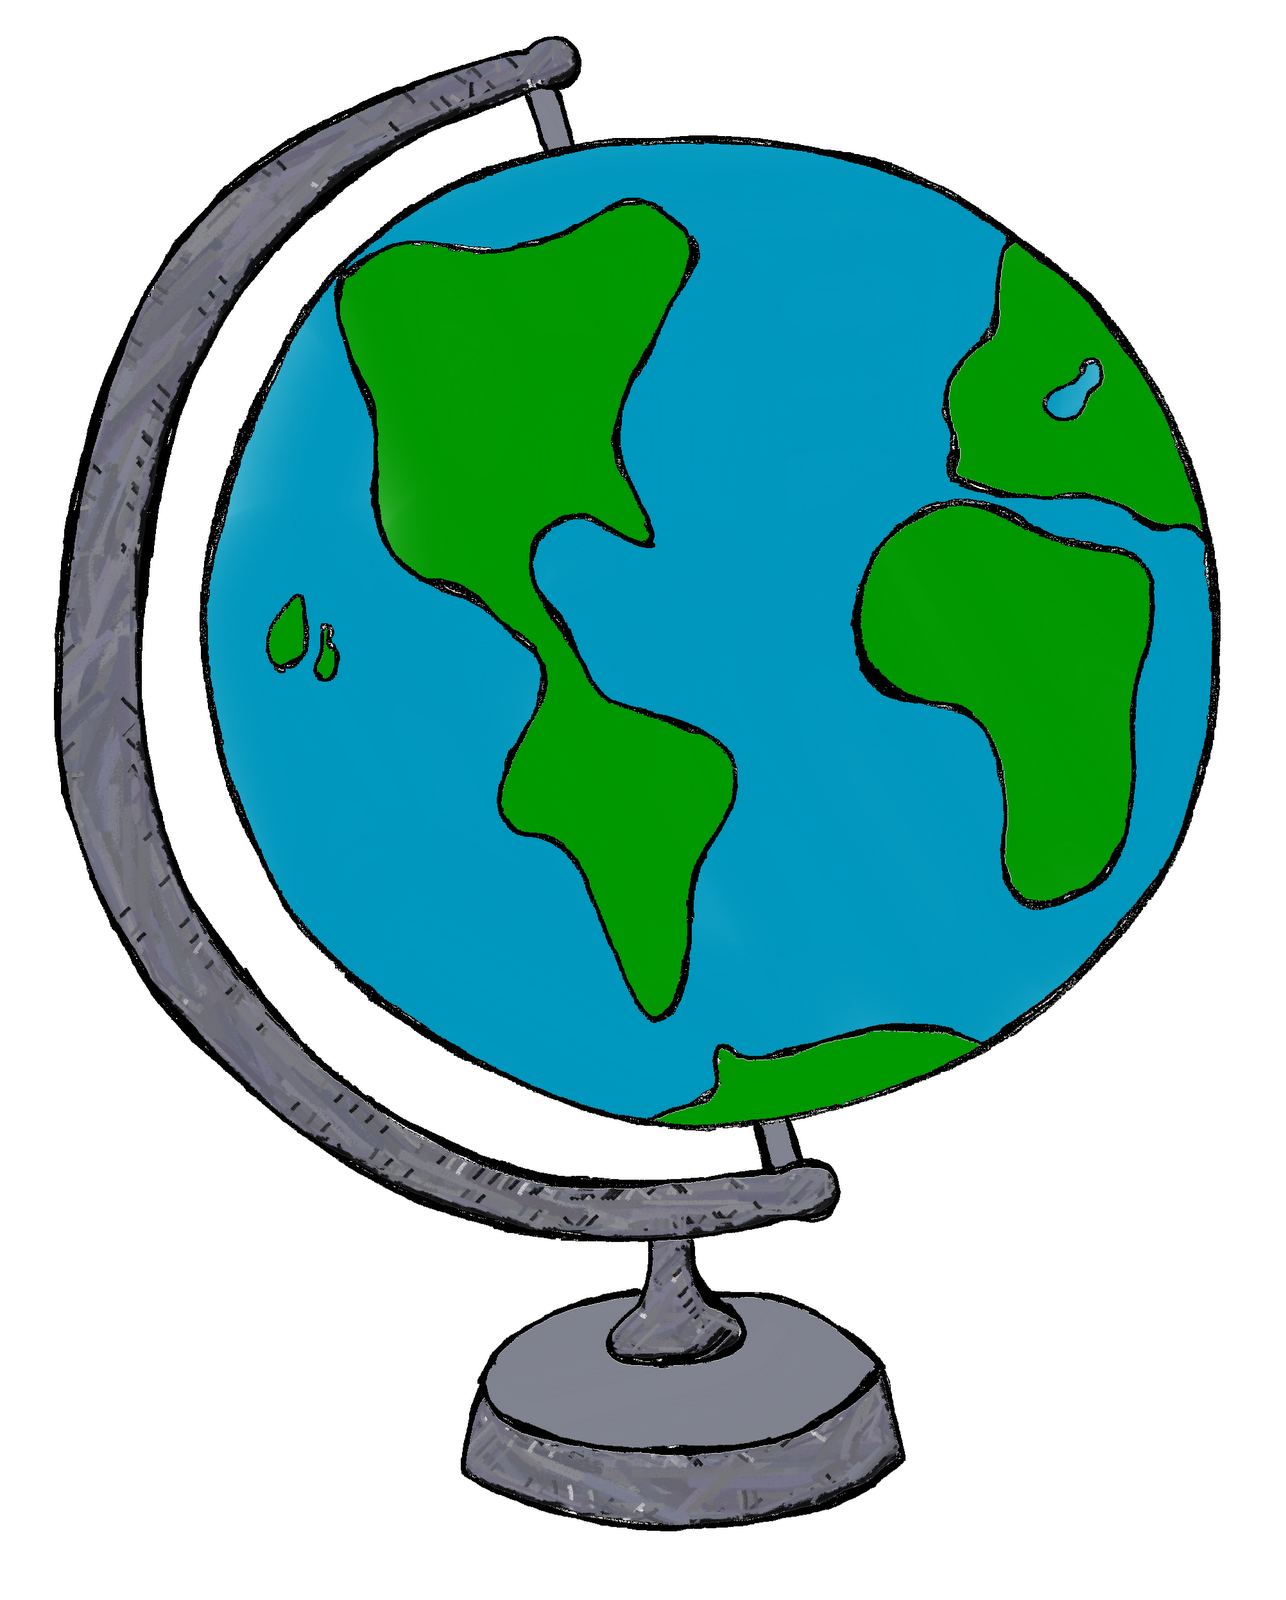 By Carrie Teaching First My World Doodles Clip Art And Freebie Globe